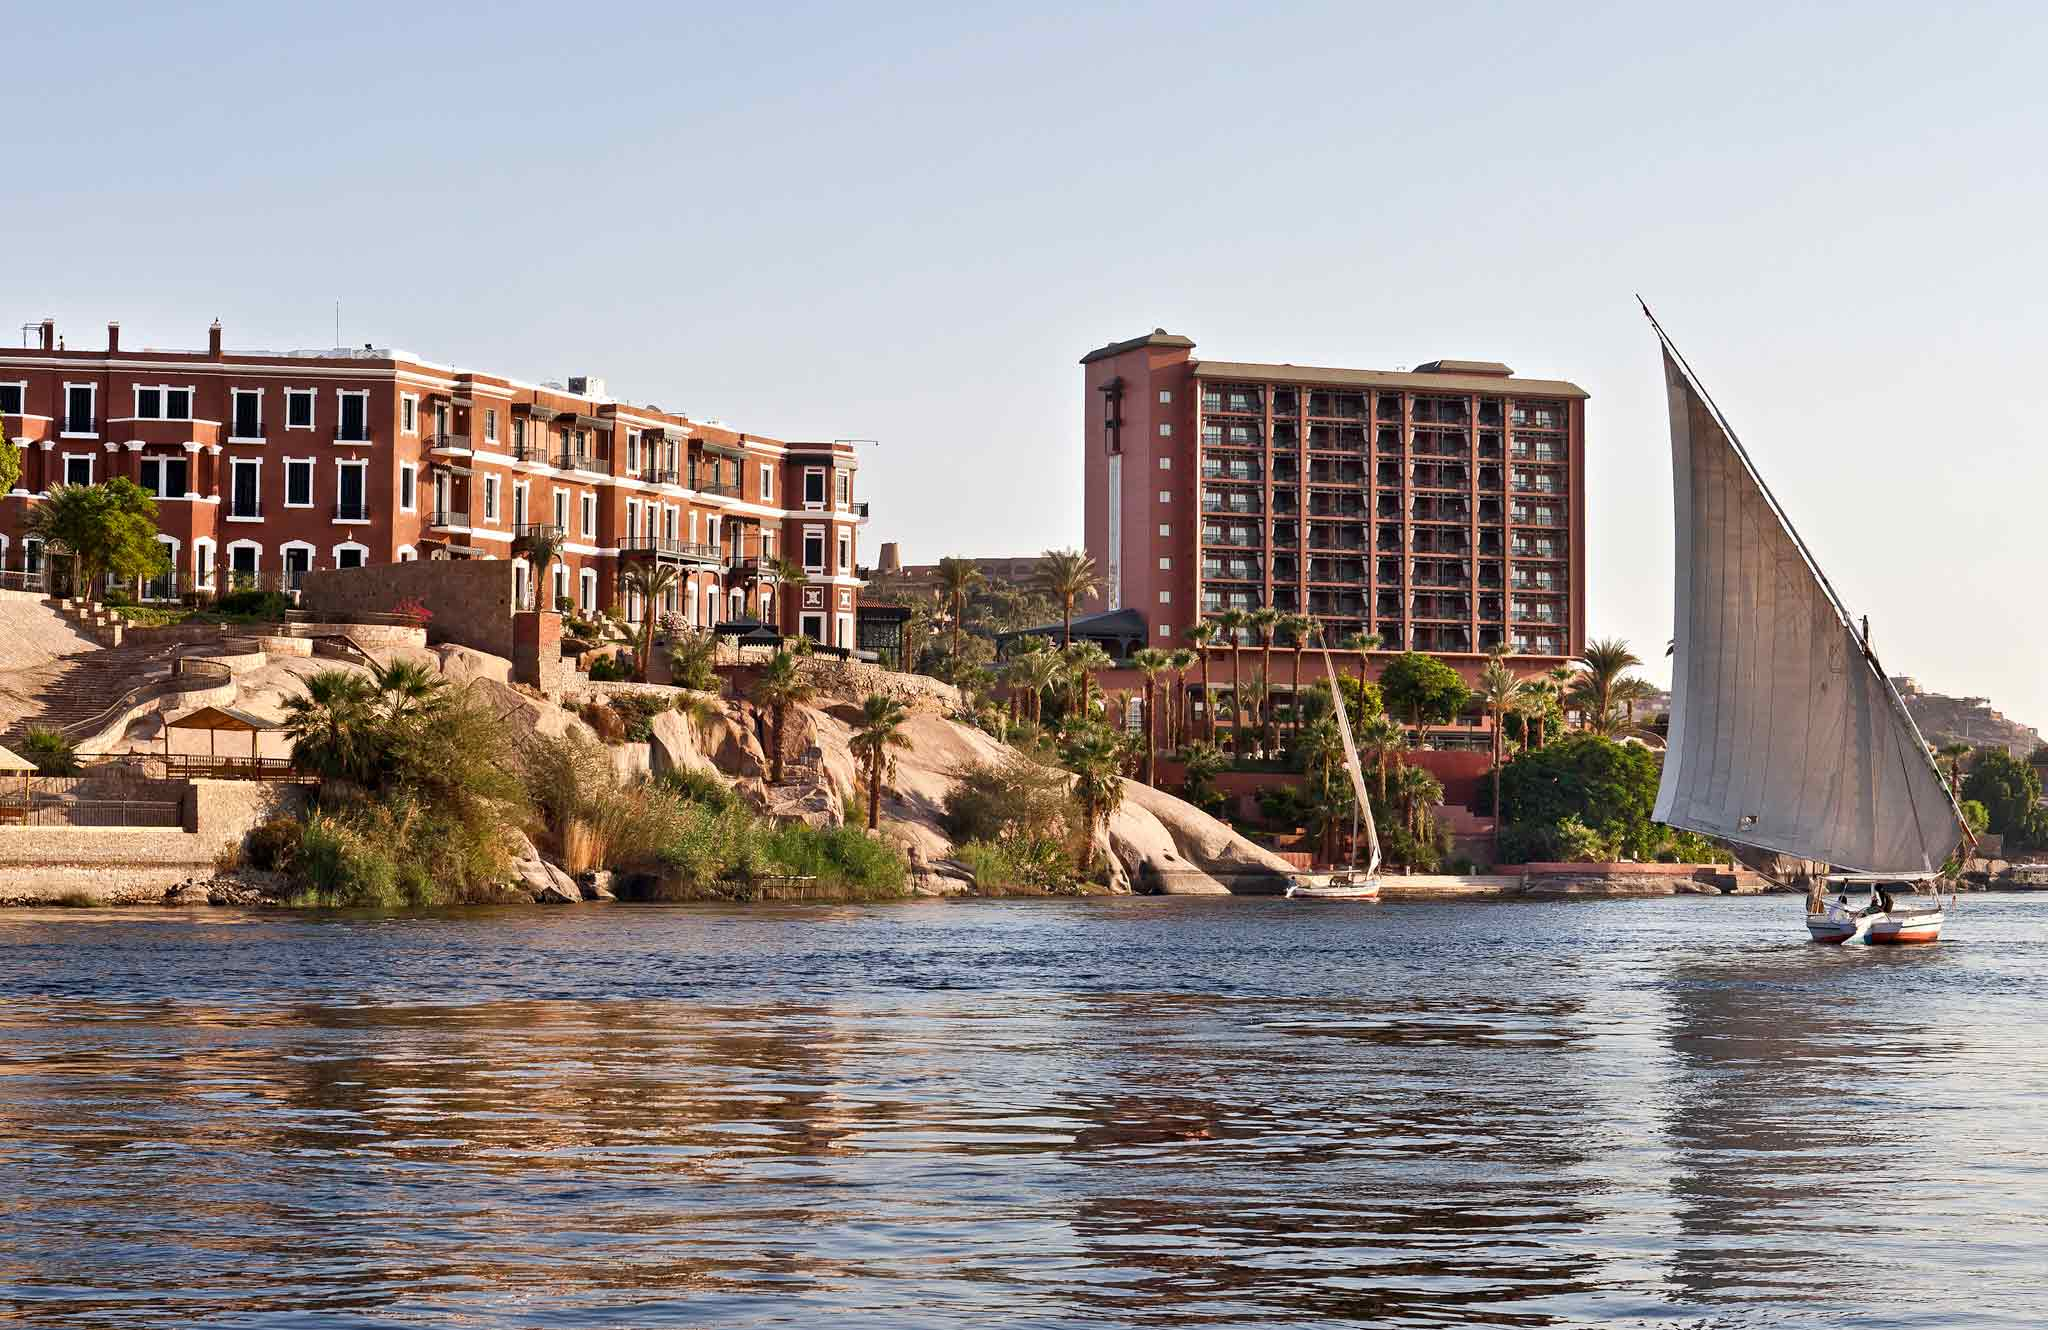 Sofitel Legend Old Cataract, Aswan, Egypt